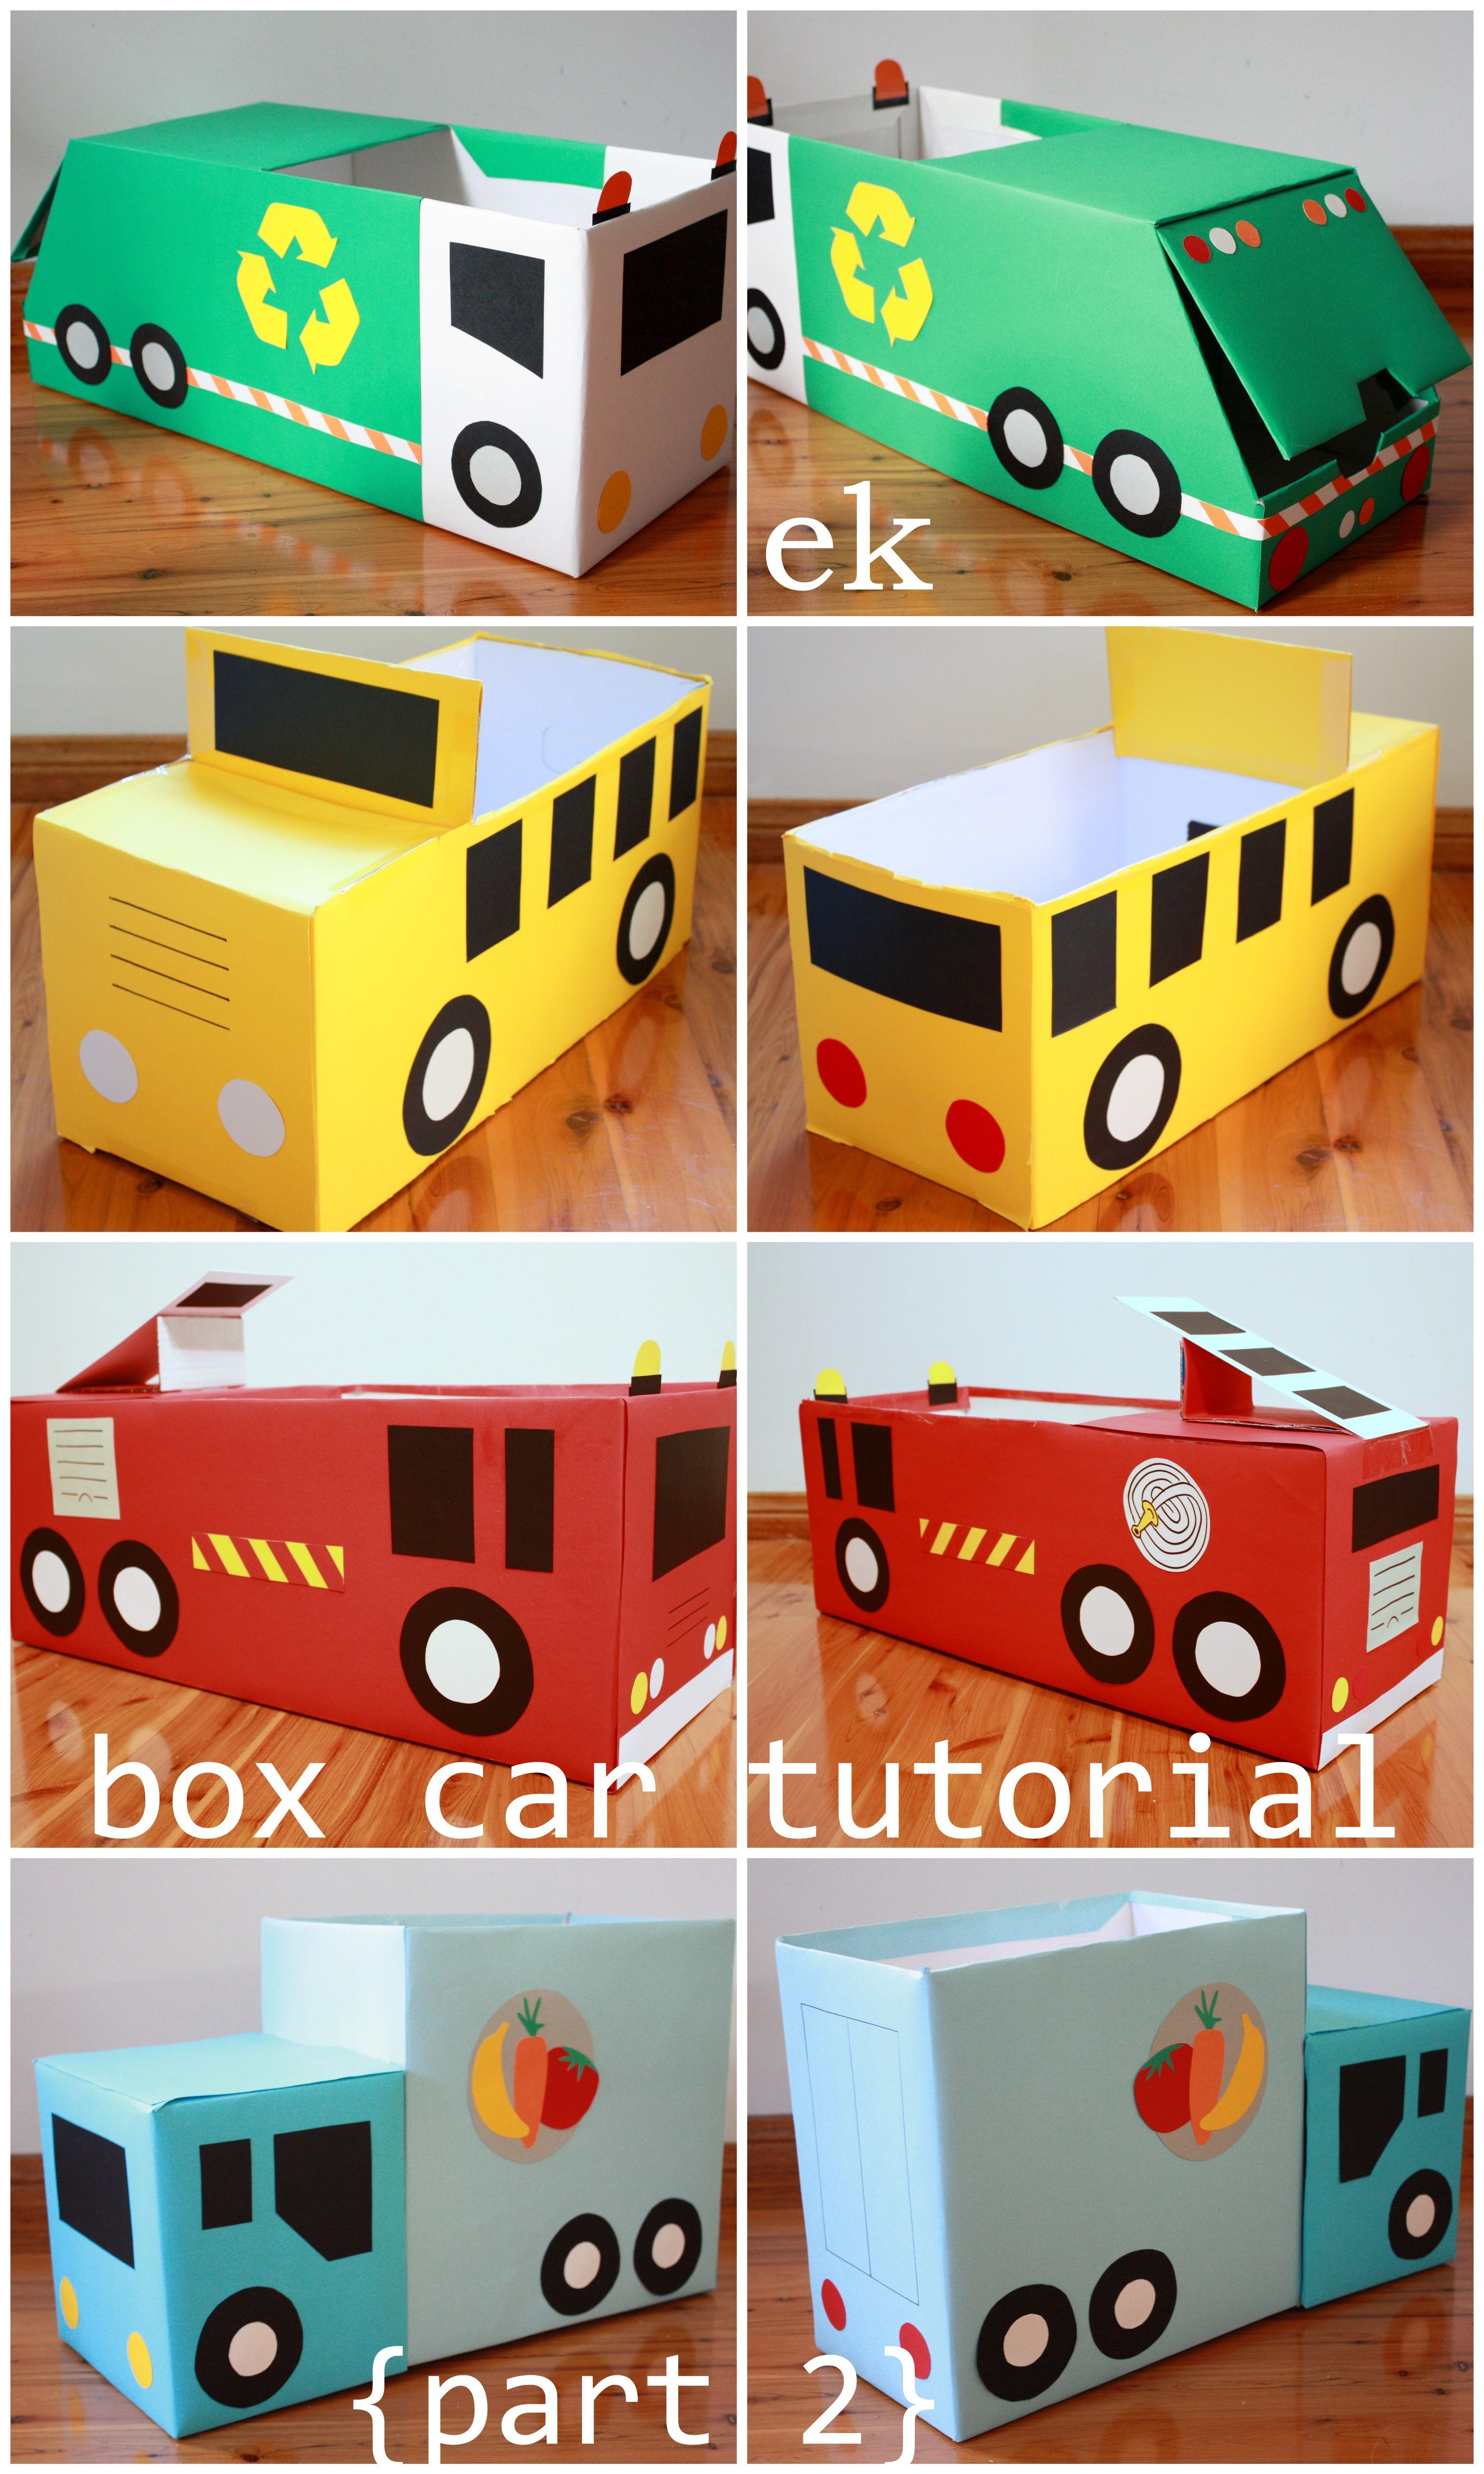 Toys toy boxes and fire trucks on pinterest - Box Car Tutorial Part 2 Larger Truck